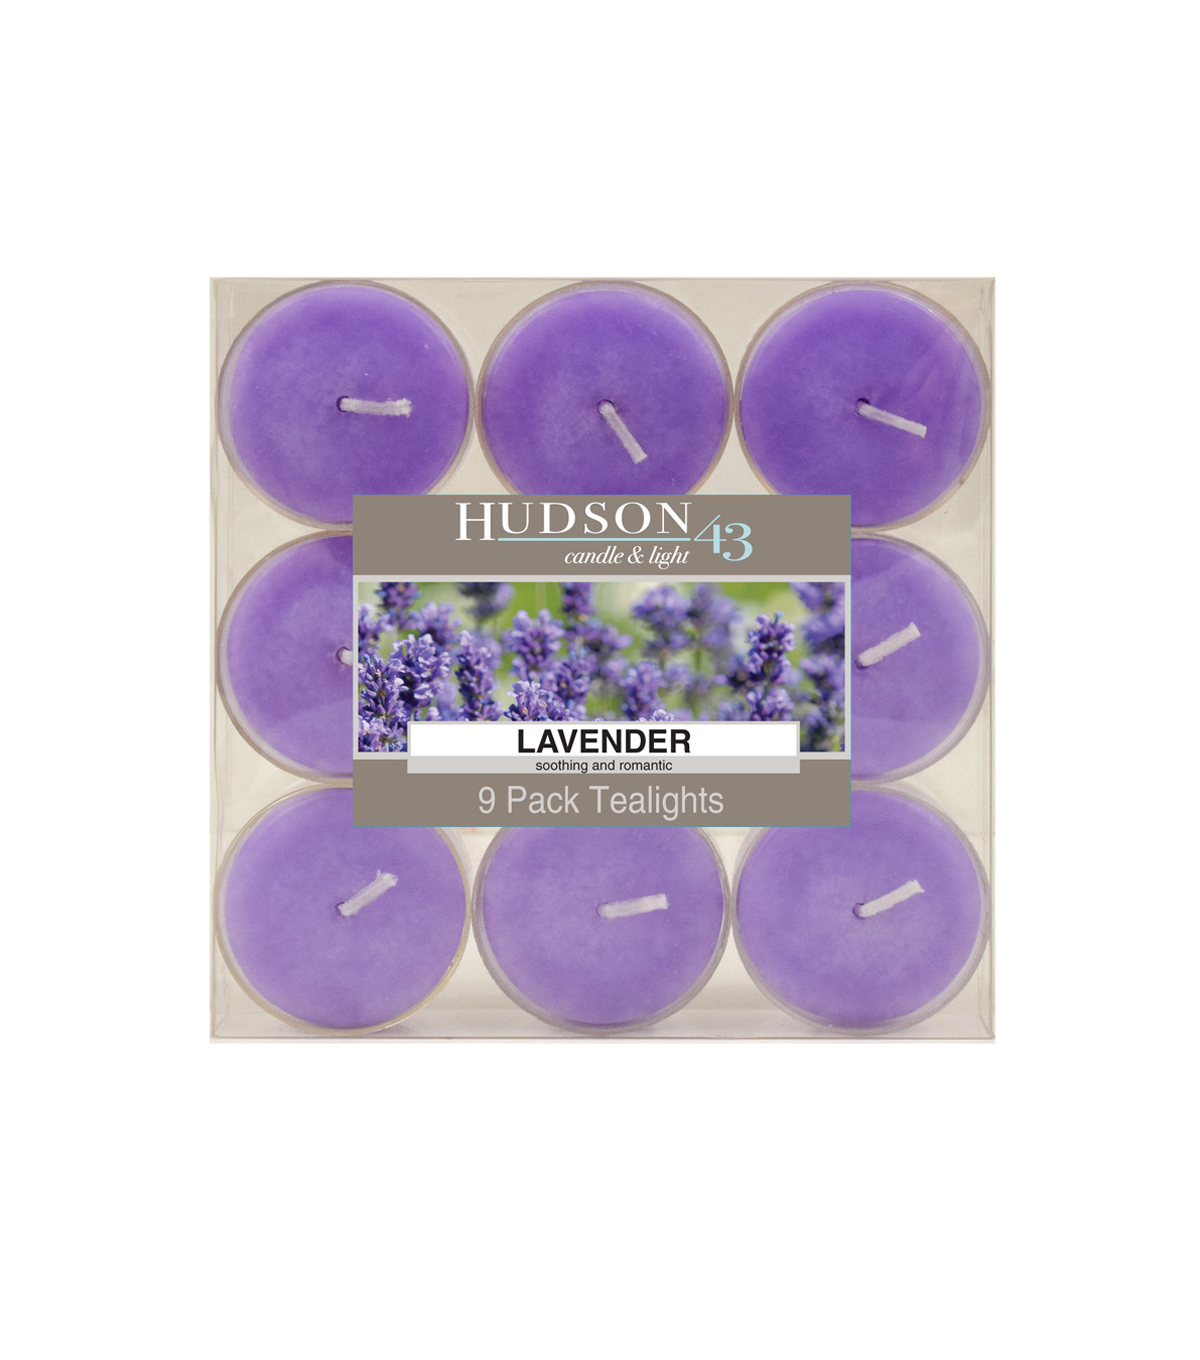 Hudson 43™ Candle & Light Collection 9 Pack Tealights Lavender